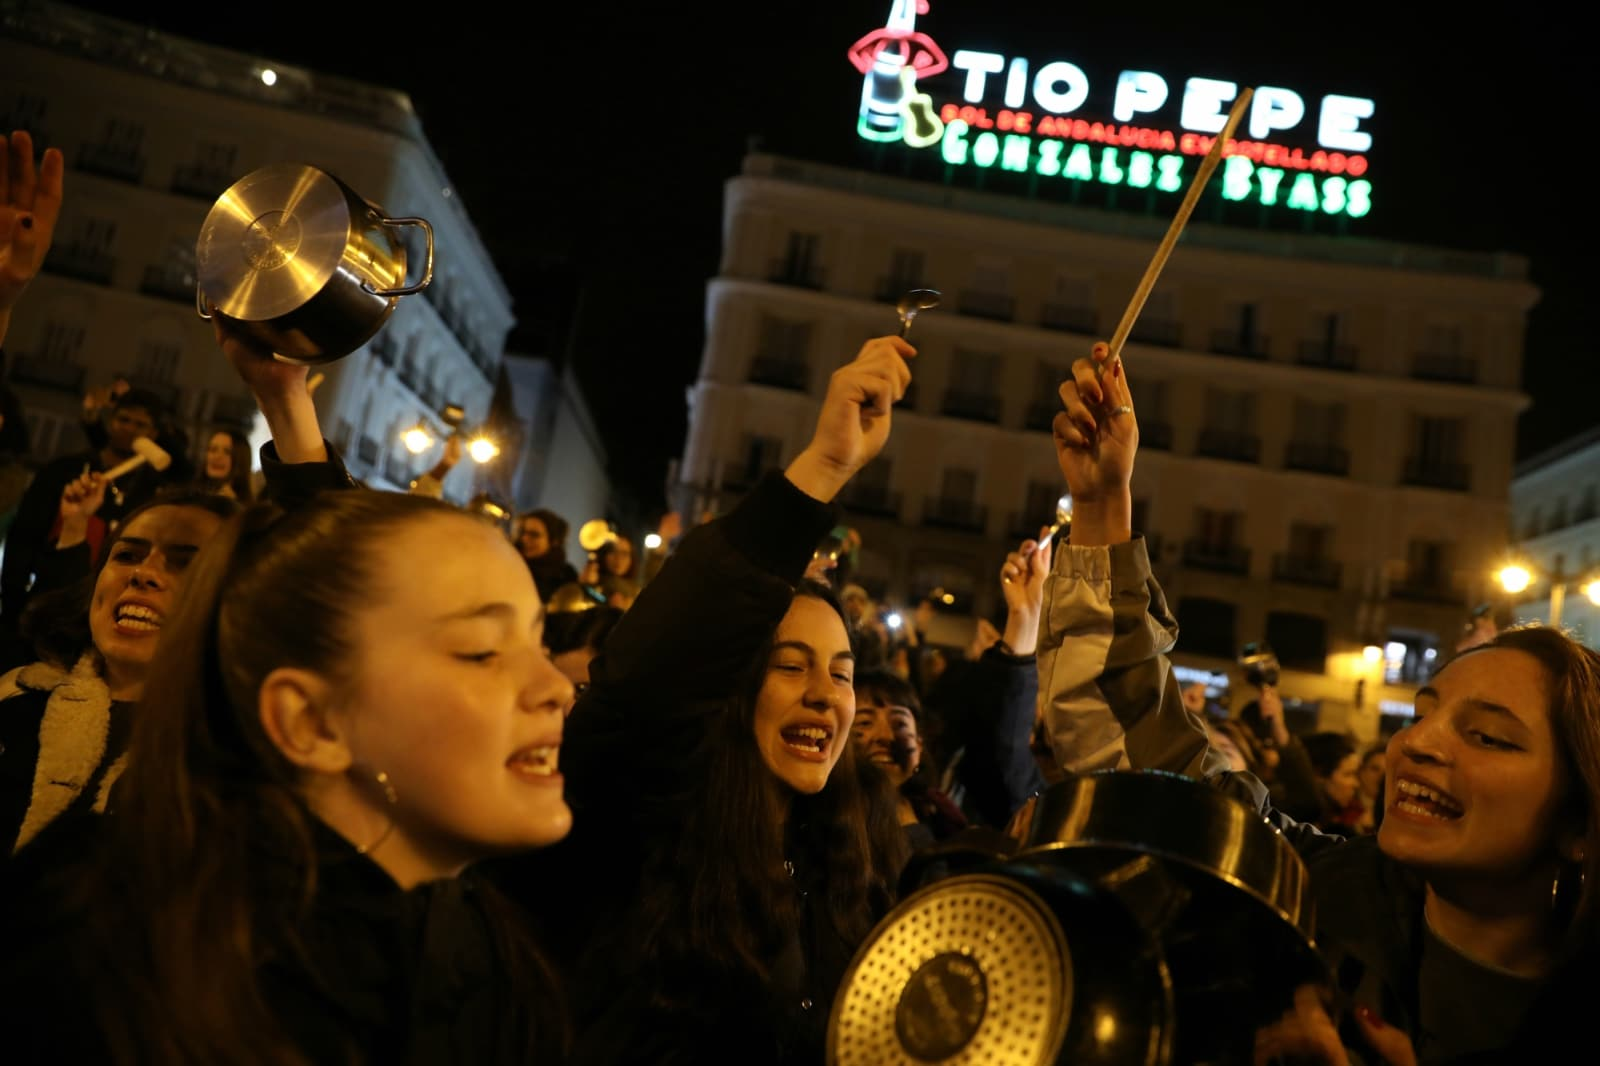 Women bang pots and pans during a protest at the start of a nationwide feminist strike on International Women's Day at Puerta del Sol Square in Madrid, Spain. (REUTERS/Susana Vera)